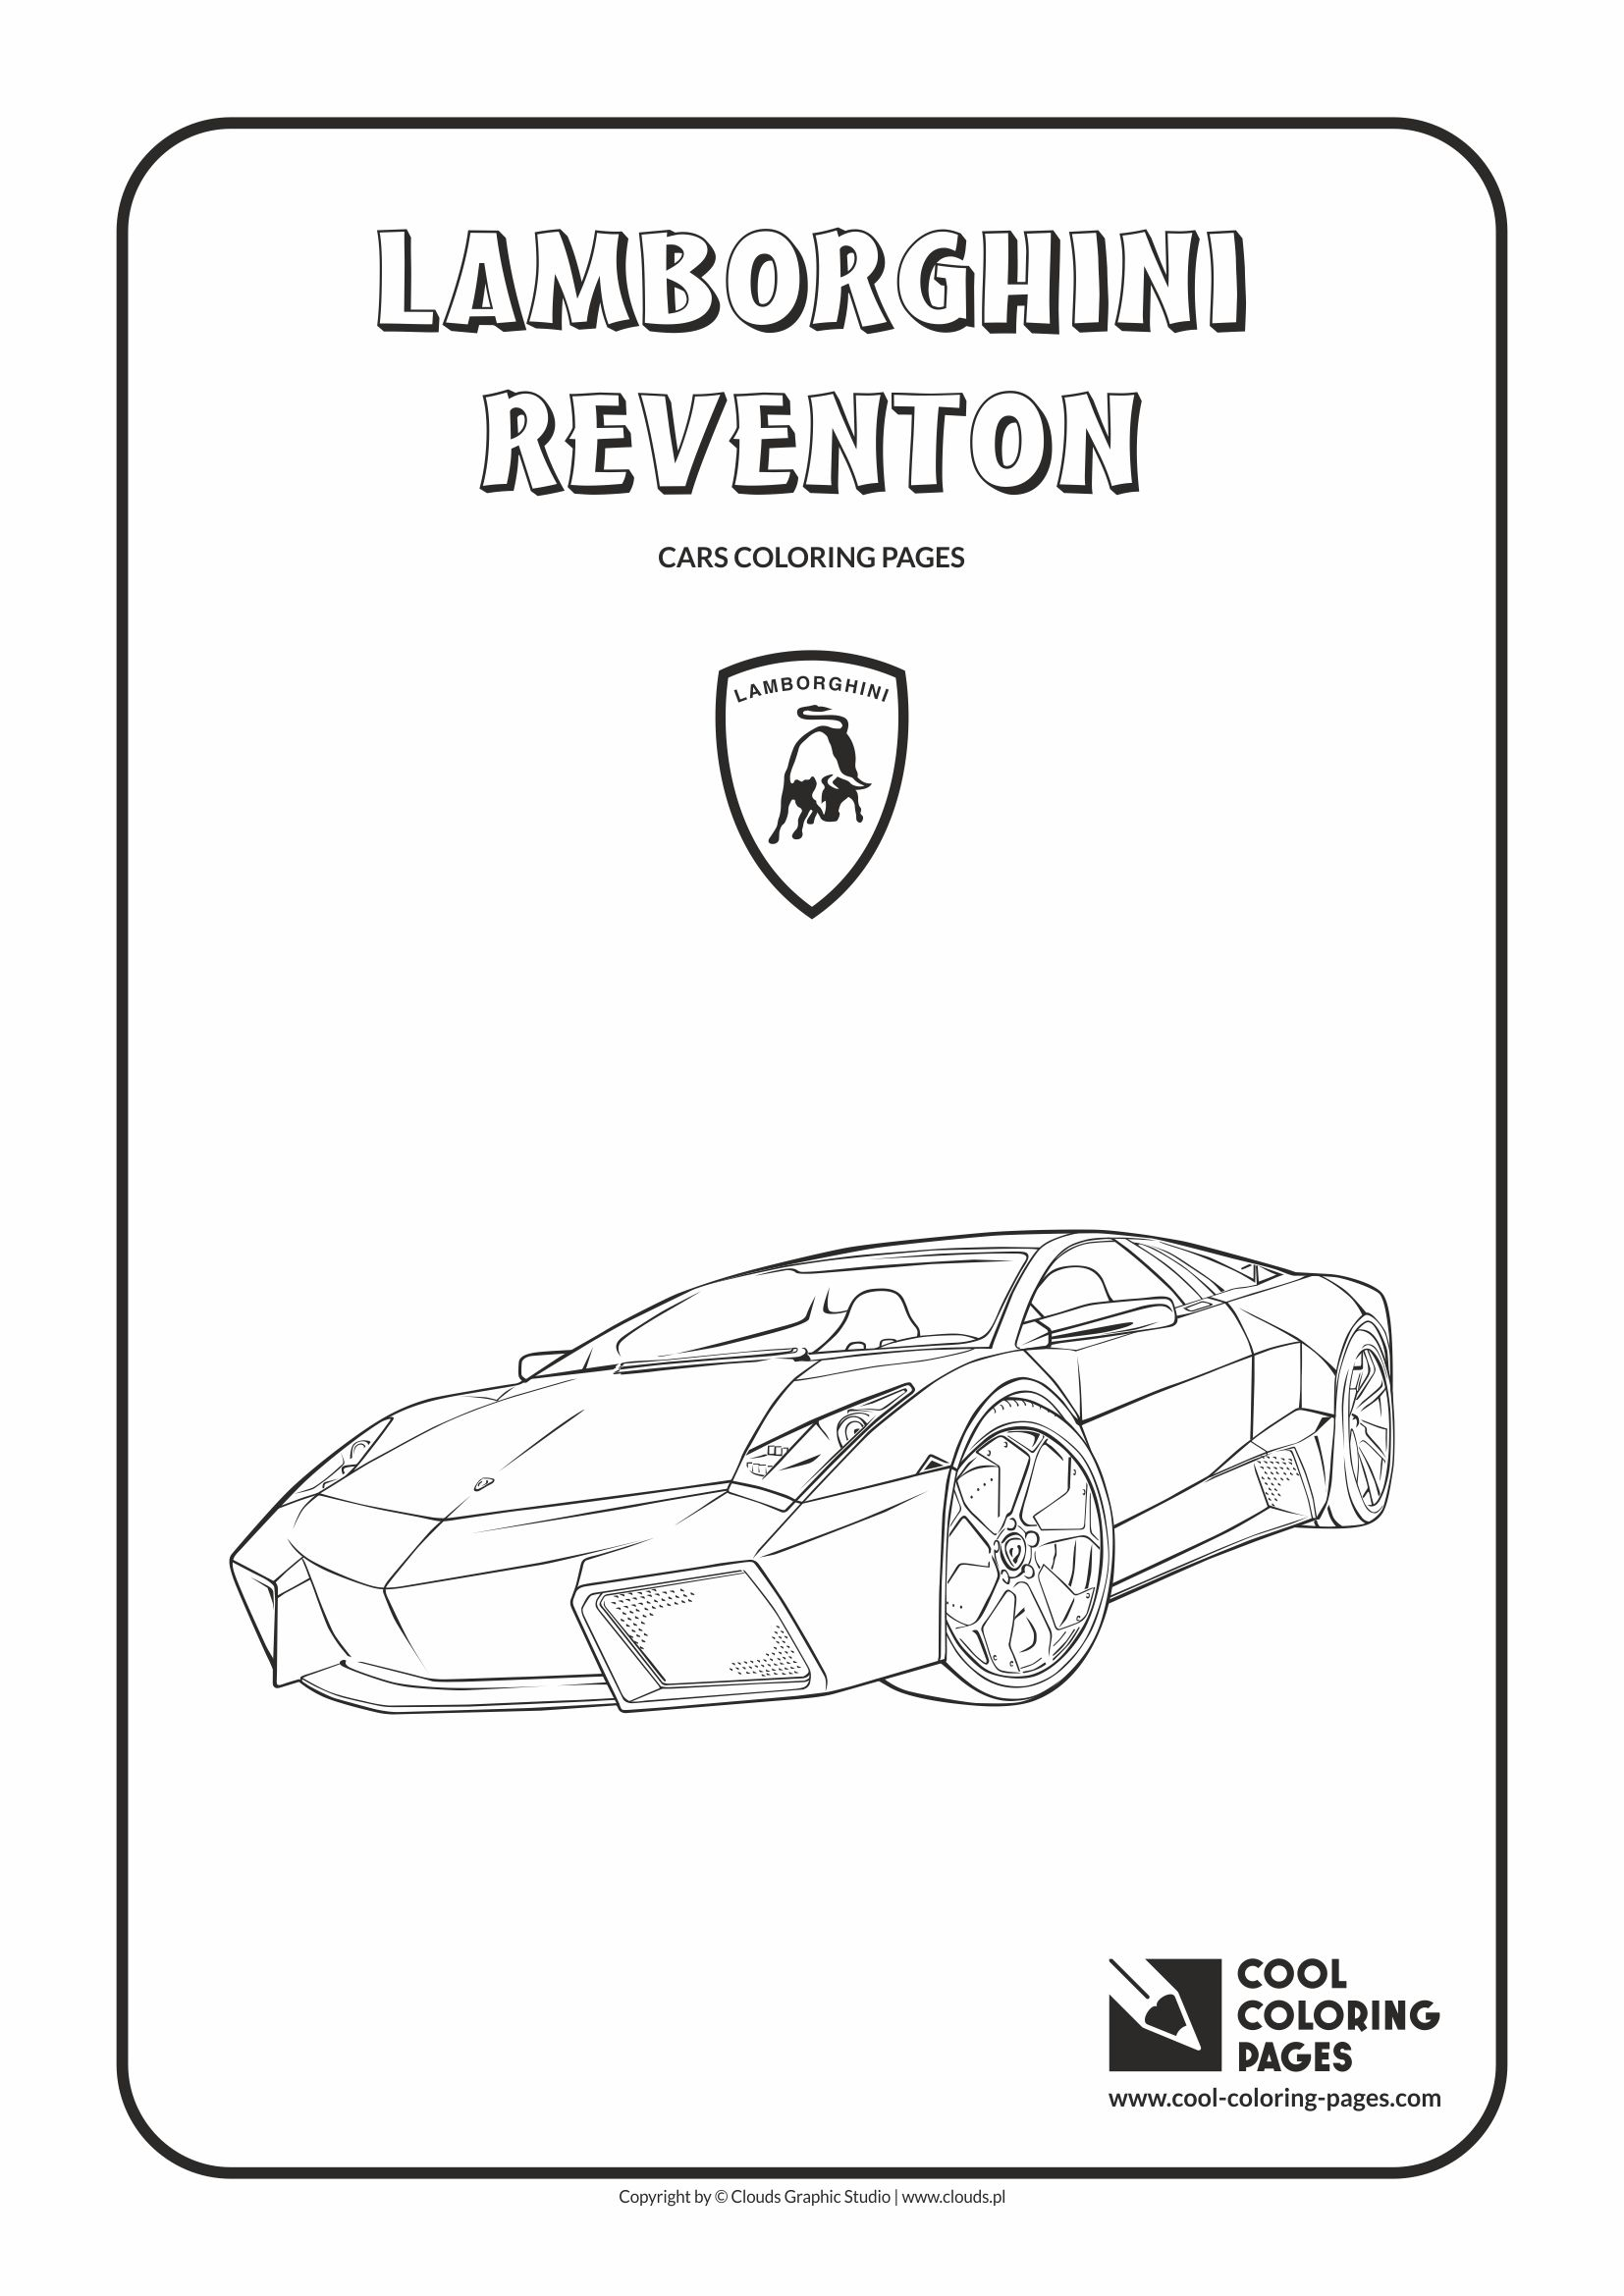 Car Coloring Pages To Print For Free Coloring Pages